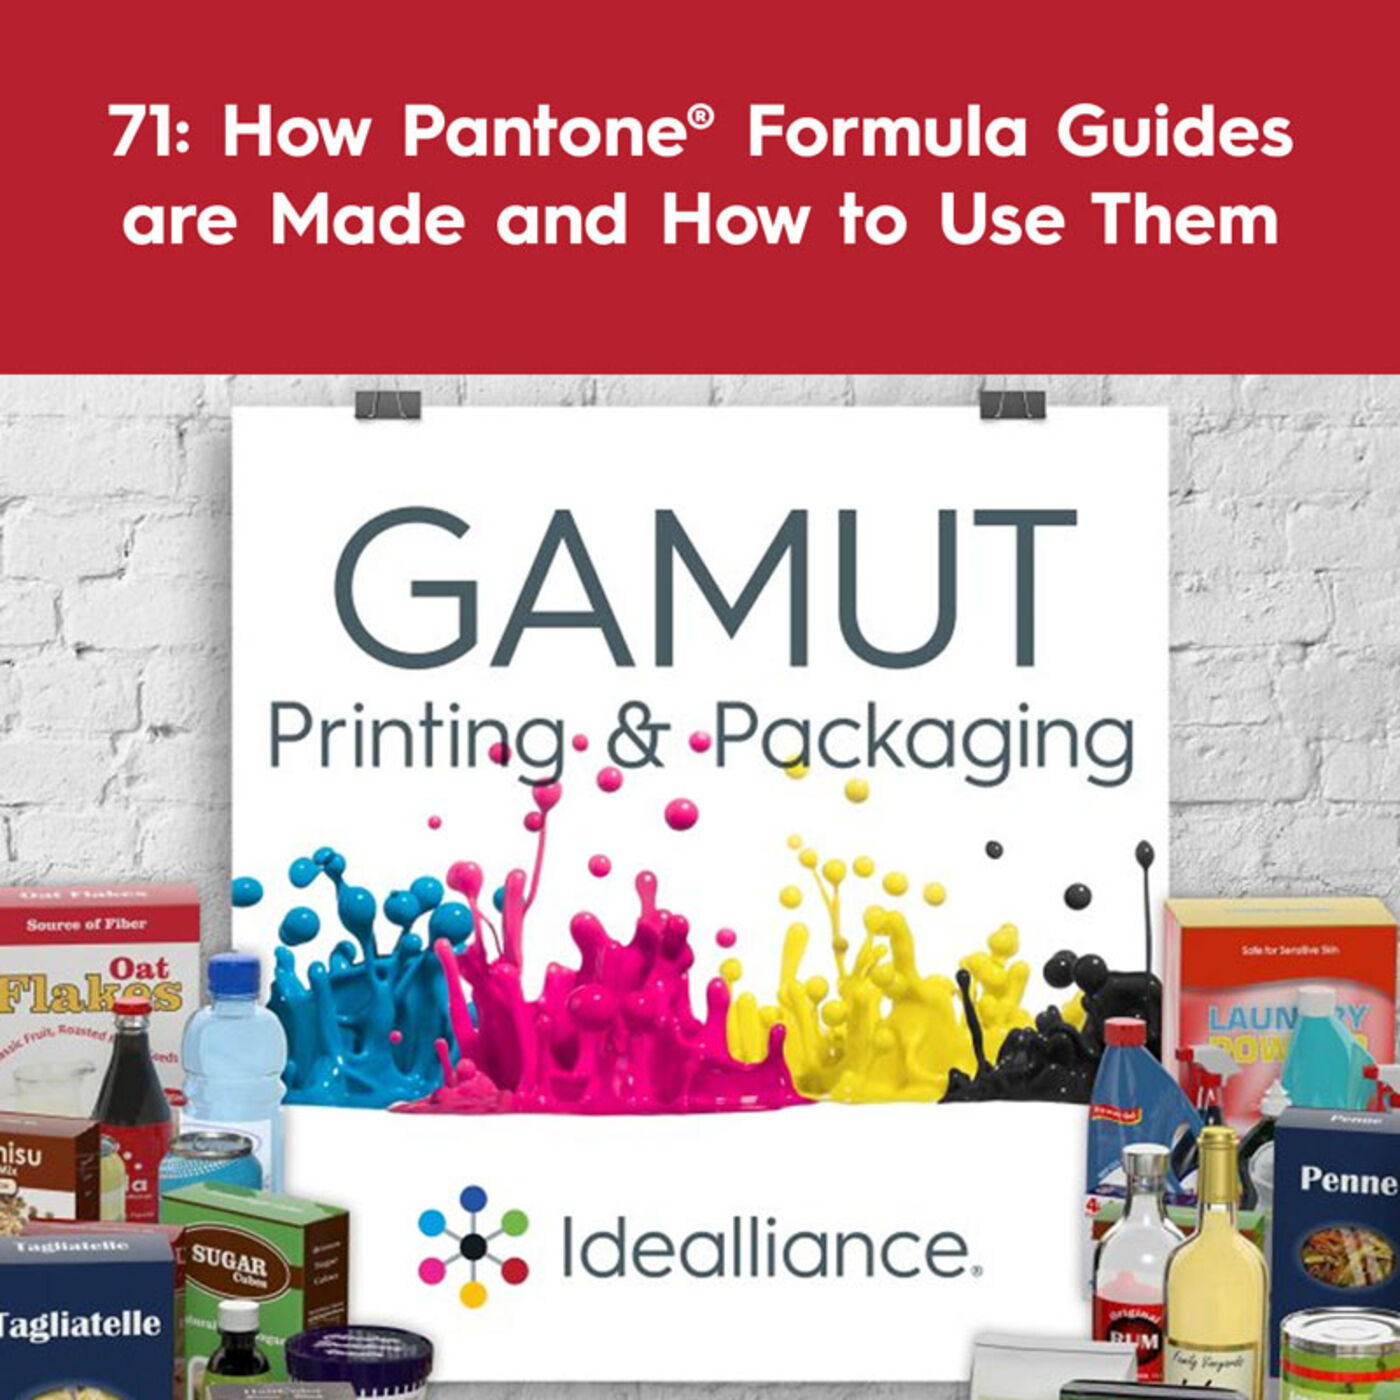 71: How Pantone® Formula Guides are Made and How to Use Them